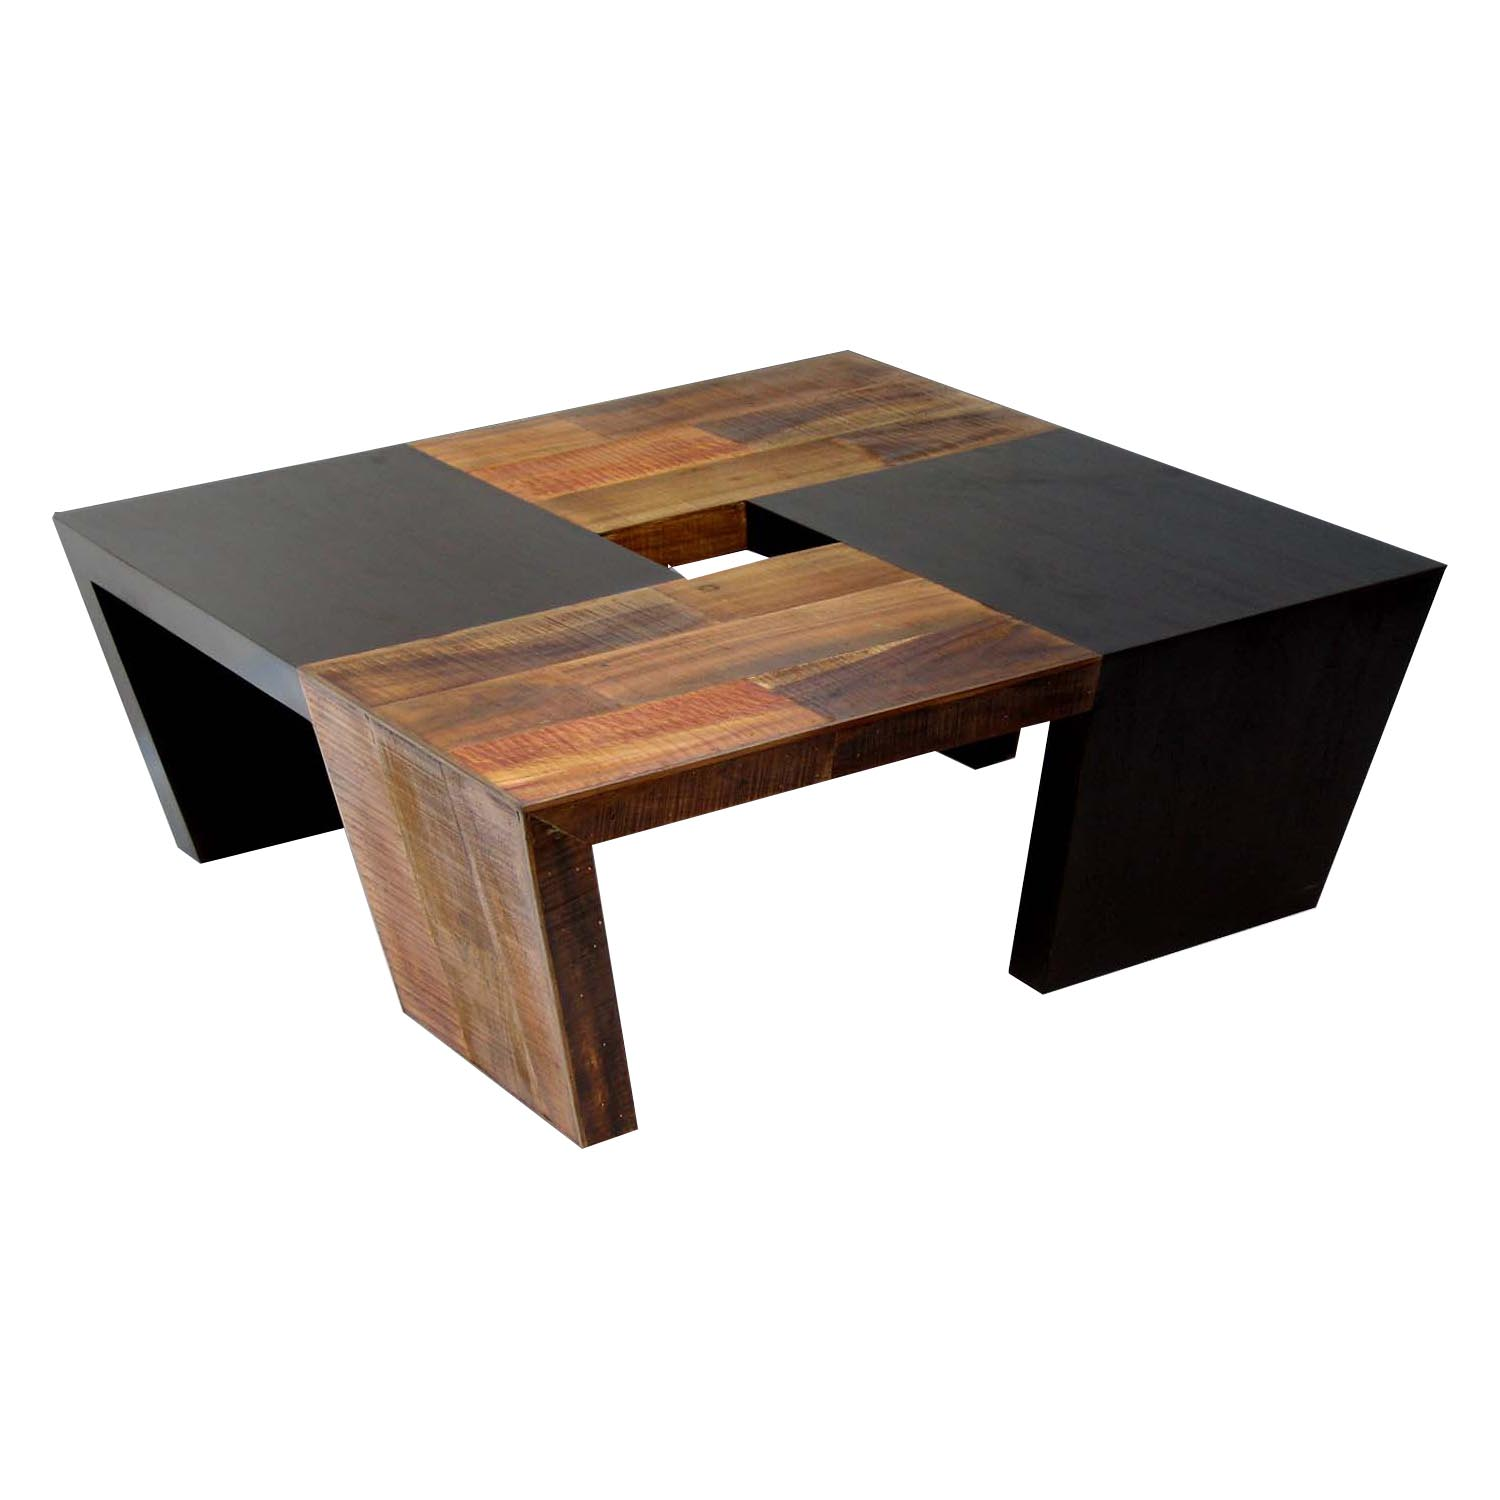 Modern wood coffee table coffee table design ideas for Modern coffee table